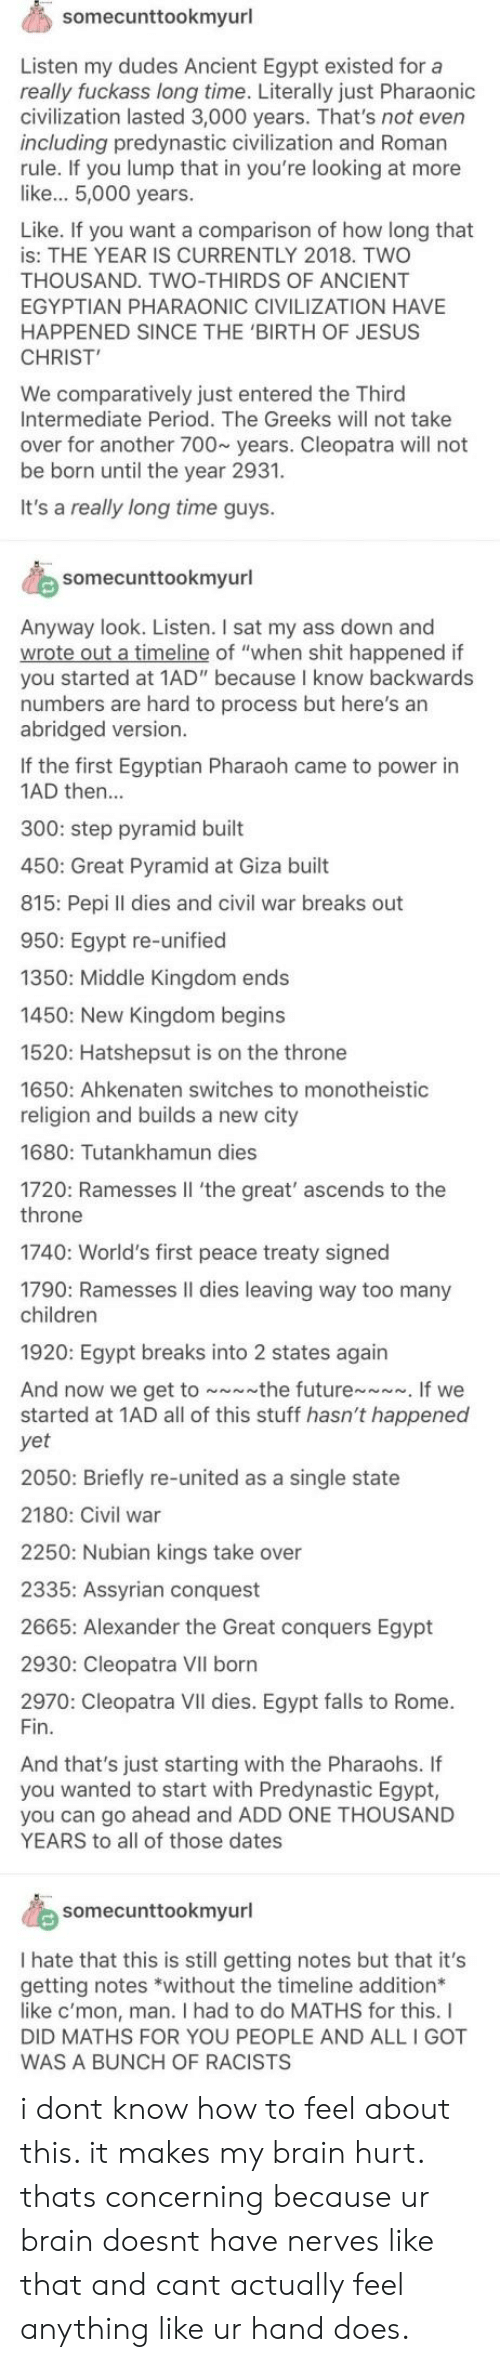 """Ass, Children, and Jesus: somecunttookmyurl  Listen my dudes Ancient Egypt existed for a  really fuckass long time. Literally just Pharaonioc  civilization lasted 3,000 years. That's not even  including predynastic civilization and Roman  rule. If you lump that in you're looking at more  like... 5,000 years.  Like. If you want a comparison of how long that  is: THE YEAR IS CURRENTLY 2018. TWO  THOUSAND. TWO-THIRDS OF ANCIENT  EGYPTIAN PHARAONIC CIVILIZATION HAVE  HAPPENED SINCE THE 'BIRTH OF JESUS  CHRIST  We comparatively just entered the Third  Intermediate Period. The Greeks will not take  over for another 700~ years. Cleopatra will not  be born until the year 2931.  It's a really long time guys.  somecunttookmyurl  Anyway look. Listen. I sat my ass down and  of """"when shit happened if  you started at 1AD"""" because I know backwards  numbers are hard to process but here's an  abridged version.  If the first Egyptian Pharaoh came to power in  1AD then...  300: step pyramid built  450: Great Pyramid at Giza built  815: Pepi ll dies and civil war breaks out  950: Egypt re-unified  1350: Middle Kingdom ends  1450: New Kingdom begins  1520: Hatshepsut is on the throne  1650: Ahkenaten switches to monotheistic  religion and builds a new city  1680: Tutankhamun dies  1720: Ramesses Il 'the great' ascends to the  throne  1740: World's first peace treaty signed  1790: Ramesses Il dies leaving way too many  children  1920: Egypt breaks into 2 states again  And now we get to the futureIf we  started at 1AD all of this stuff hasn't happened  yet  2050: Briefly re-united as a single state  2180: Civil war  2250: Nubian kings take over  2335: Assyrian conquest  2665: Alexander the Great conquers Egypt  2930: Cleopatra VII born  2970: Cleopatra VII dies. Egypt falls to Rome.  Fin.  And that's just starting with the Pharaohs. If  you wanted to start with Predynastic Egypt  you can go ahead and ADD ONE THOUSAND  YEARS to all of those dates  somecunttookmyurl  I hate that this is sti"""